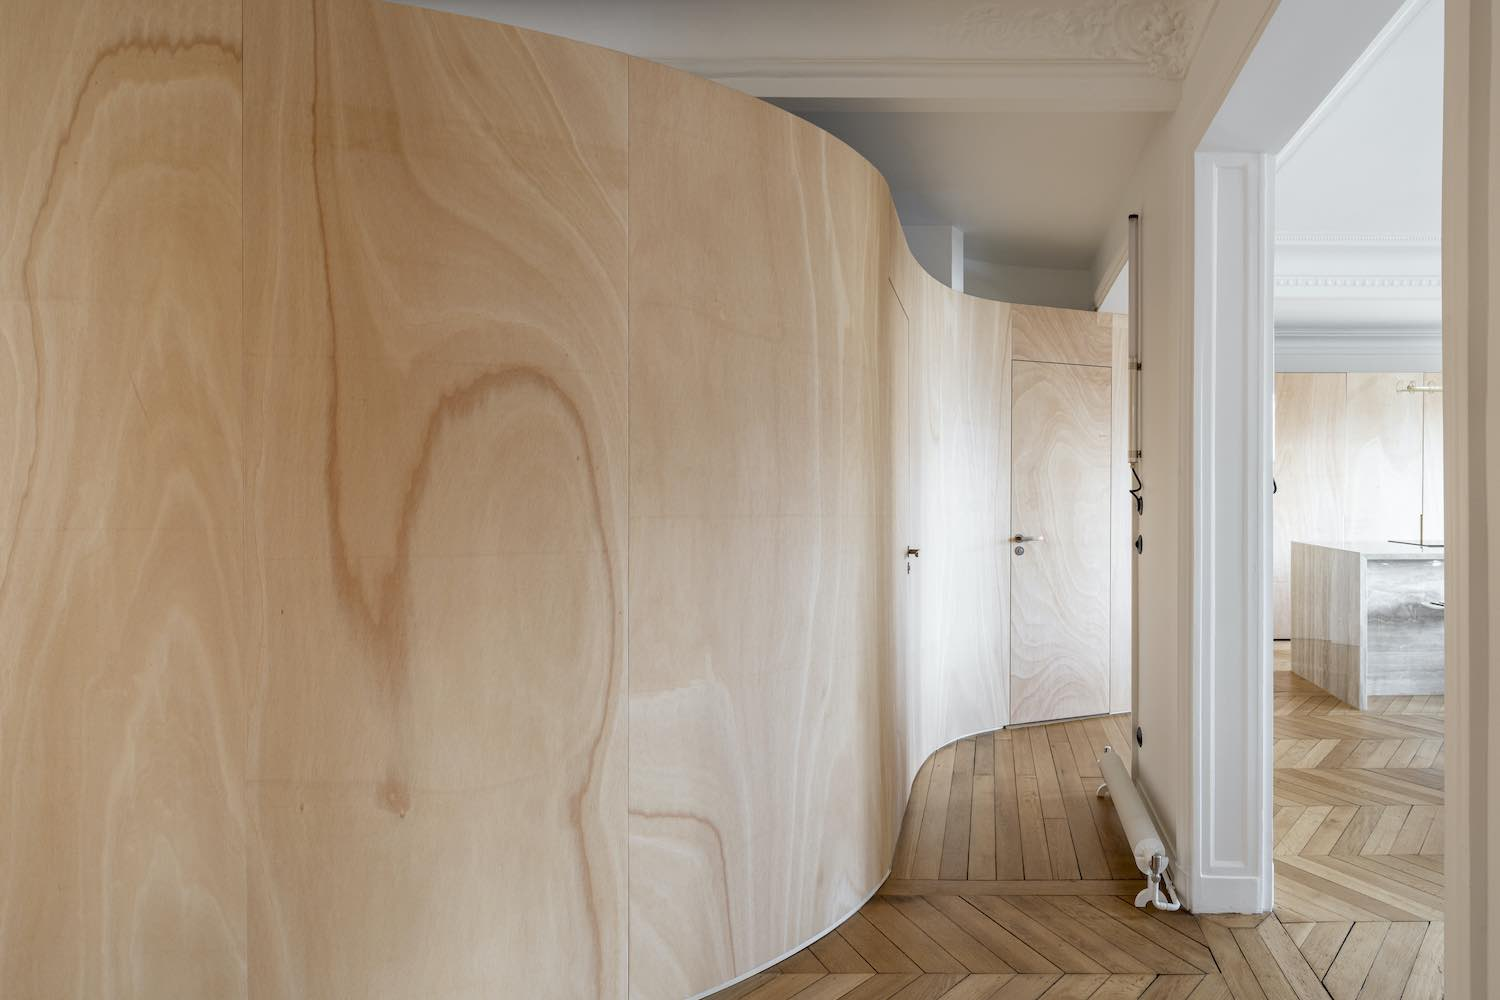 the curvy wall made of wood ribbon